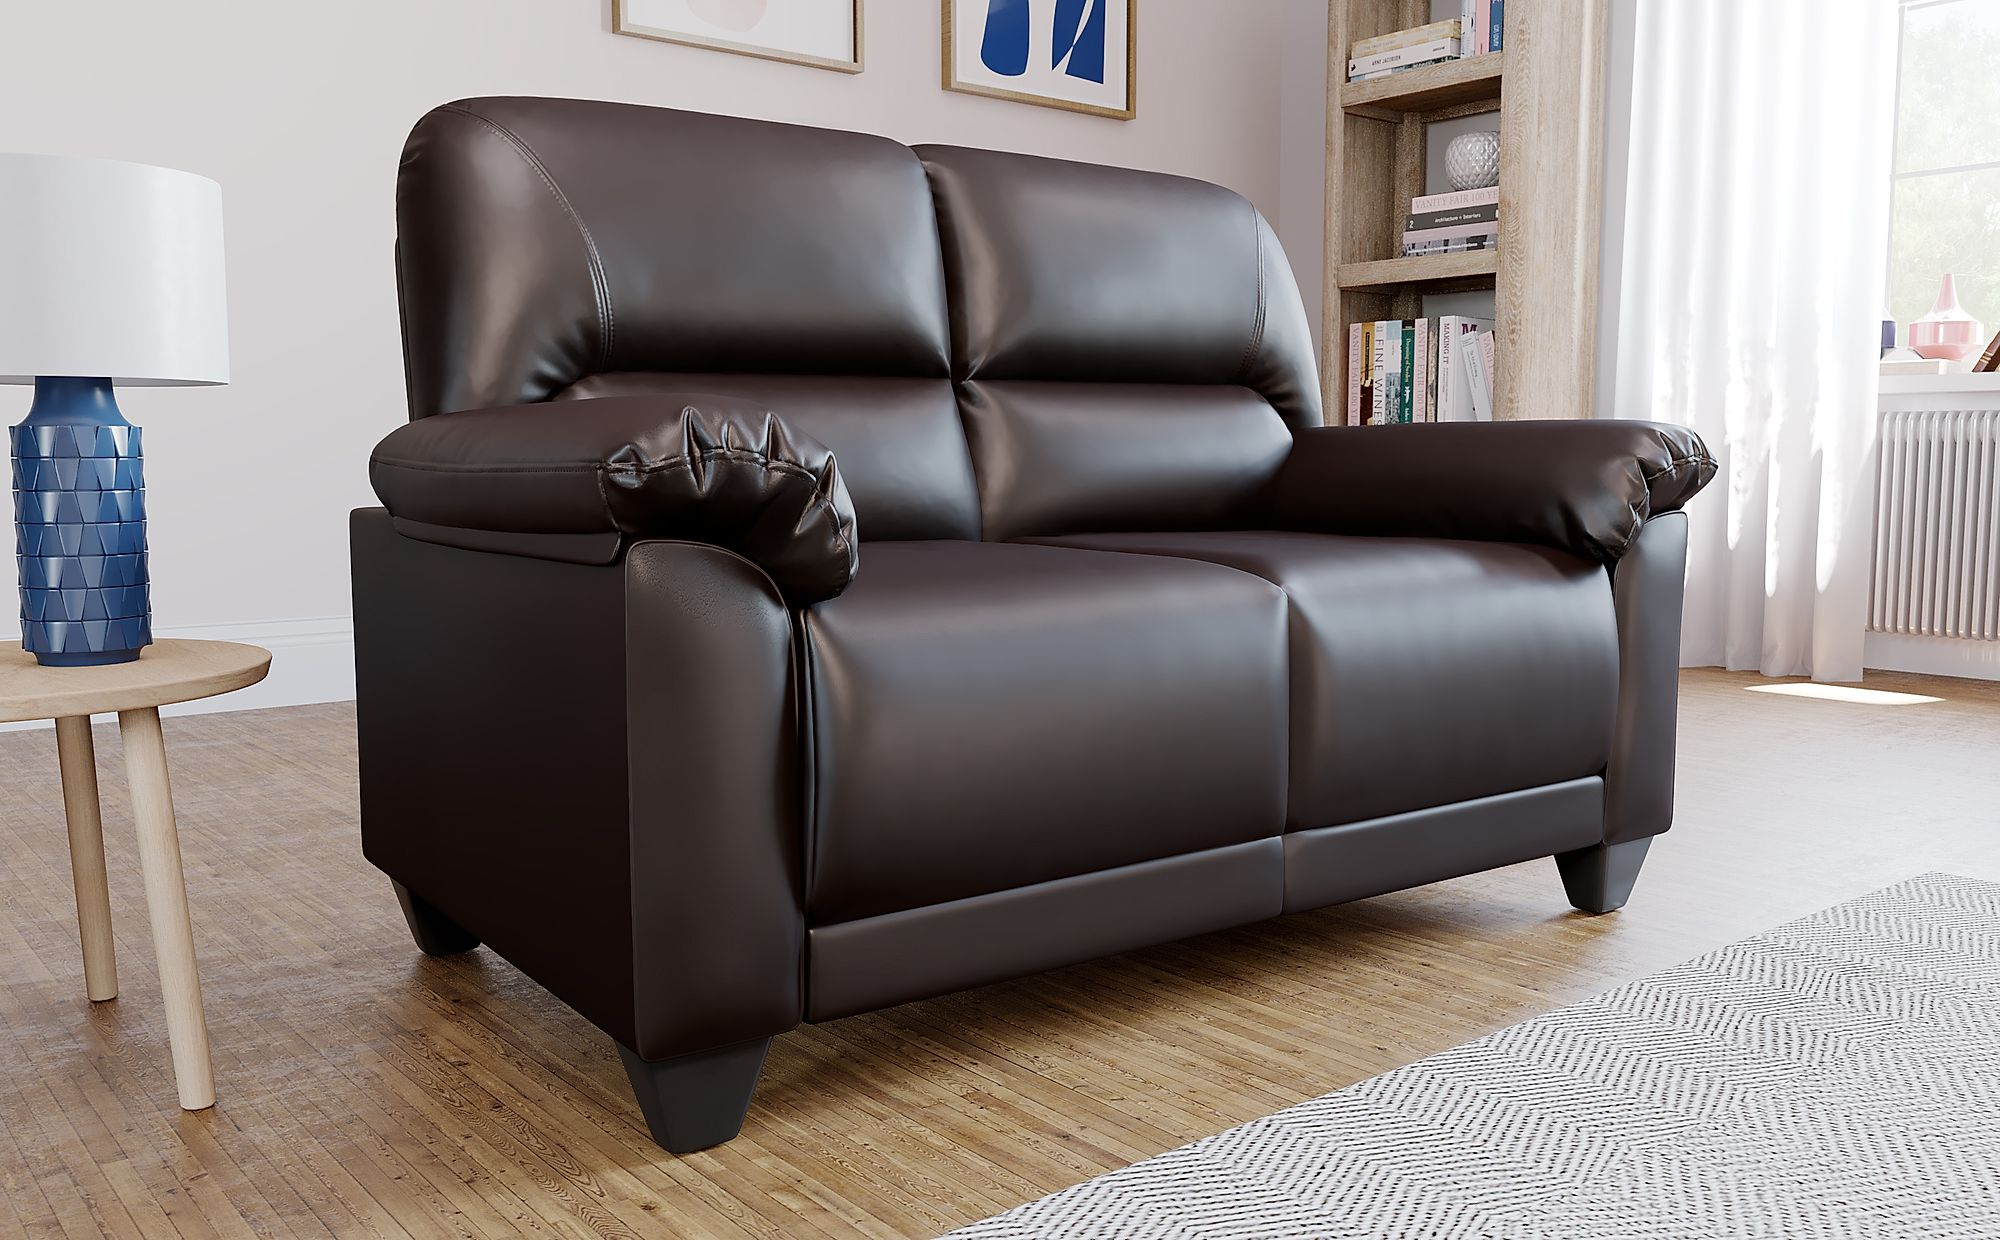 Kenton Small Brown Leather 2 Seater Sofa   Furniture Choice Within Brown Sofa Chairs (View 10 of 15)